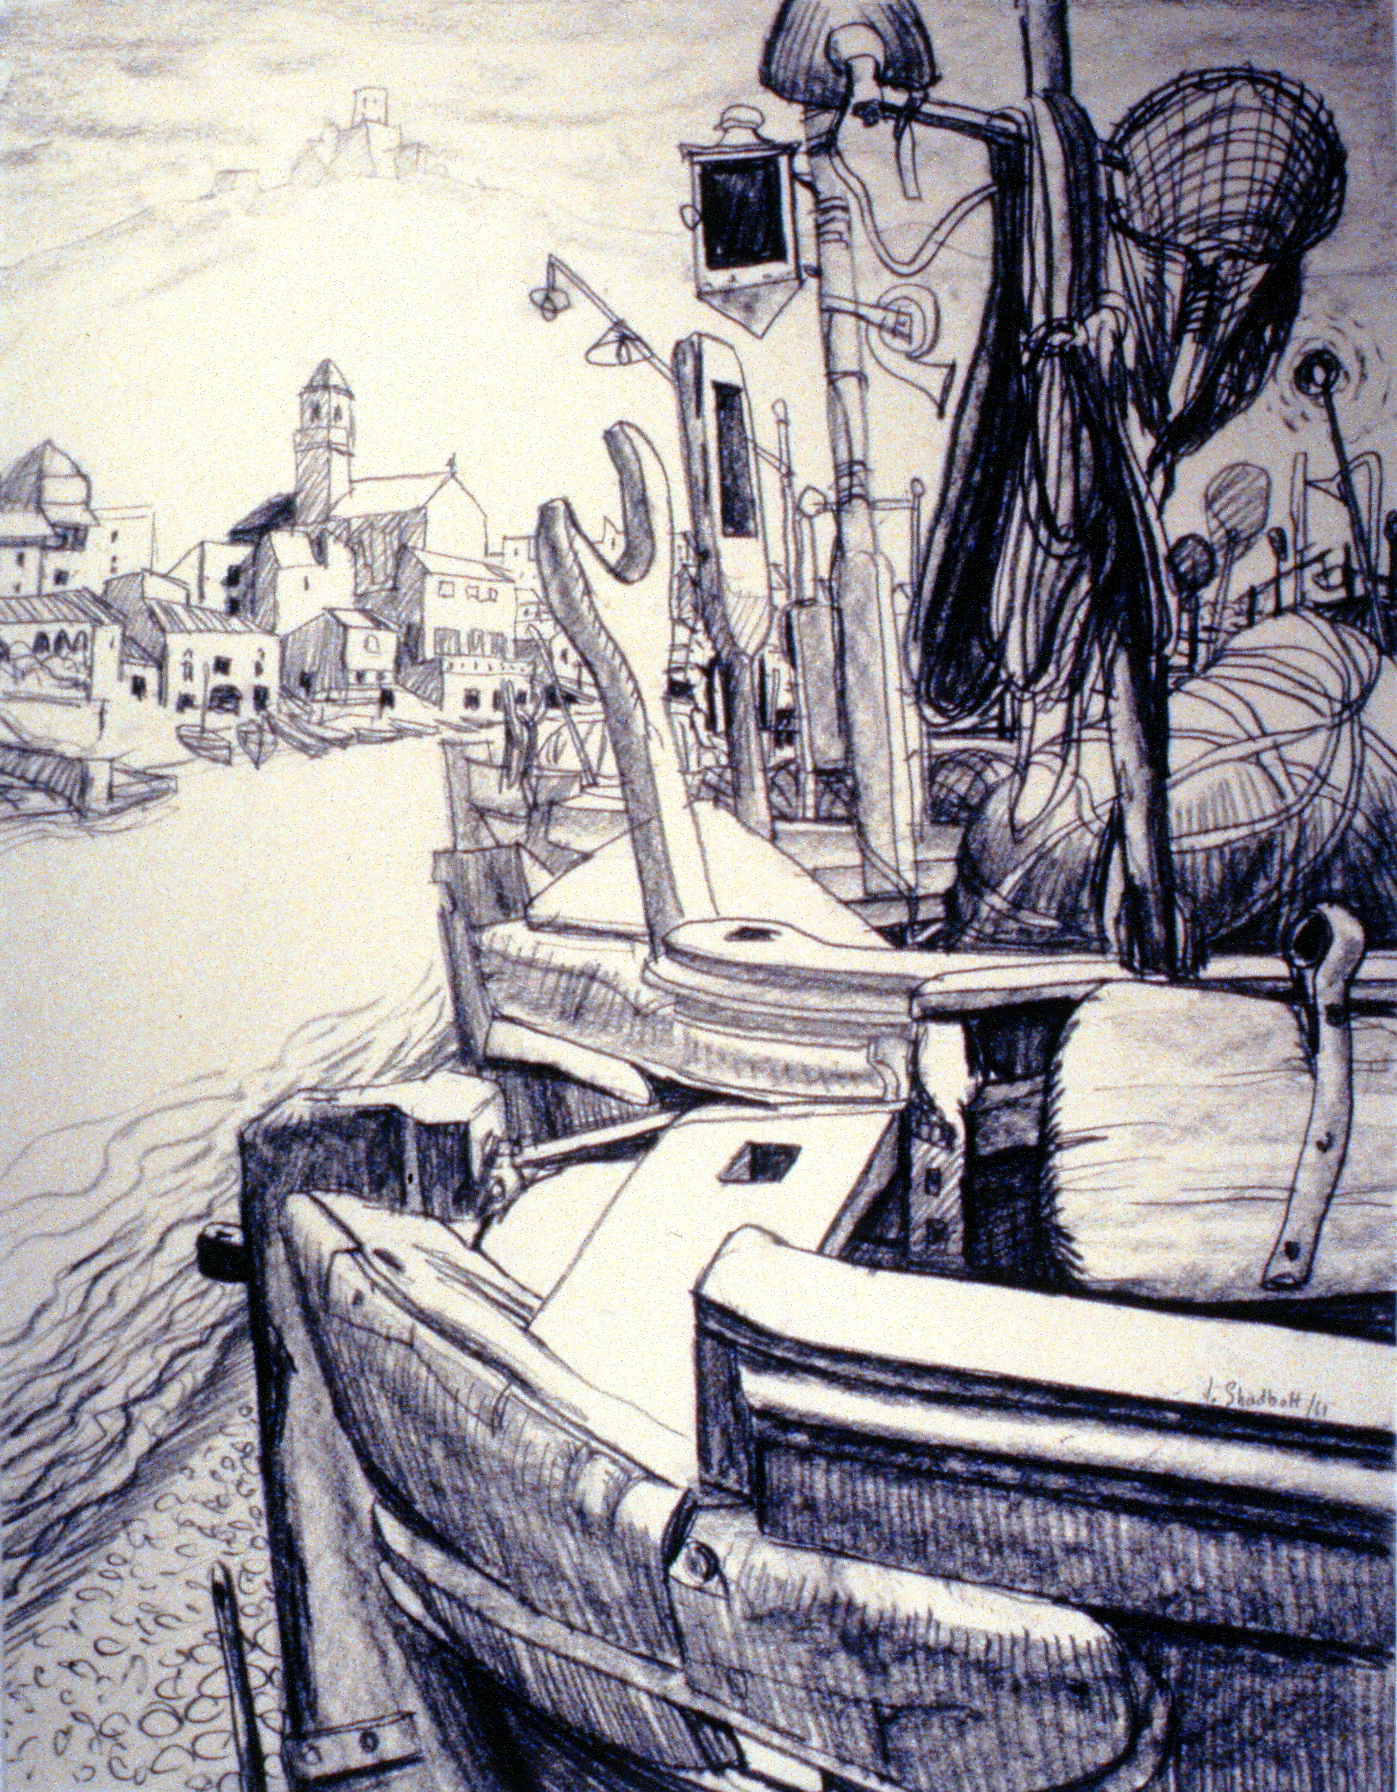 Boats , 1961, Jack Shadbolt, graphite, 65 cm x 50 cm, 1971.01.01, gift of the Community Arts Council in memory of Margaret Patterson